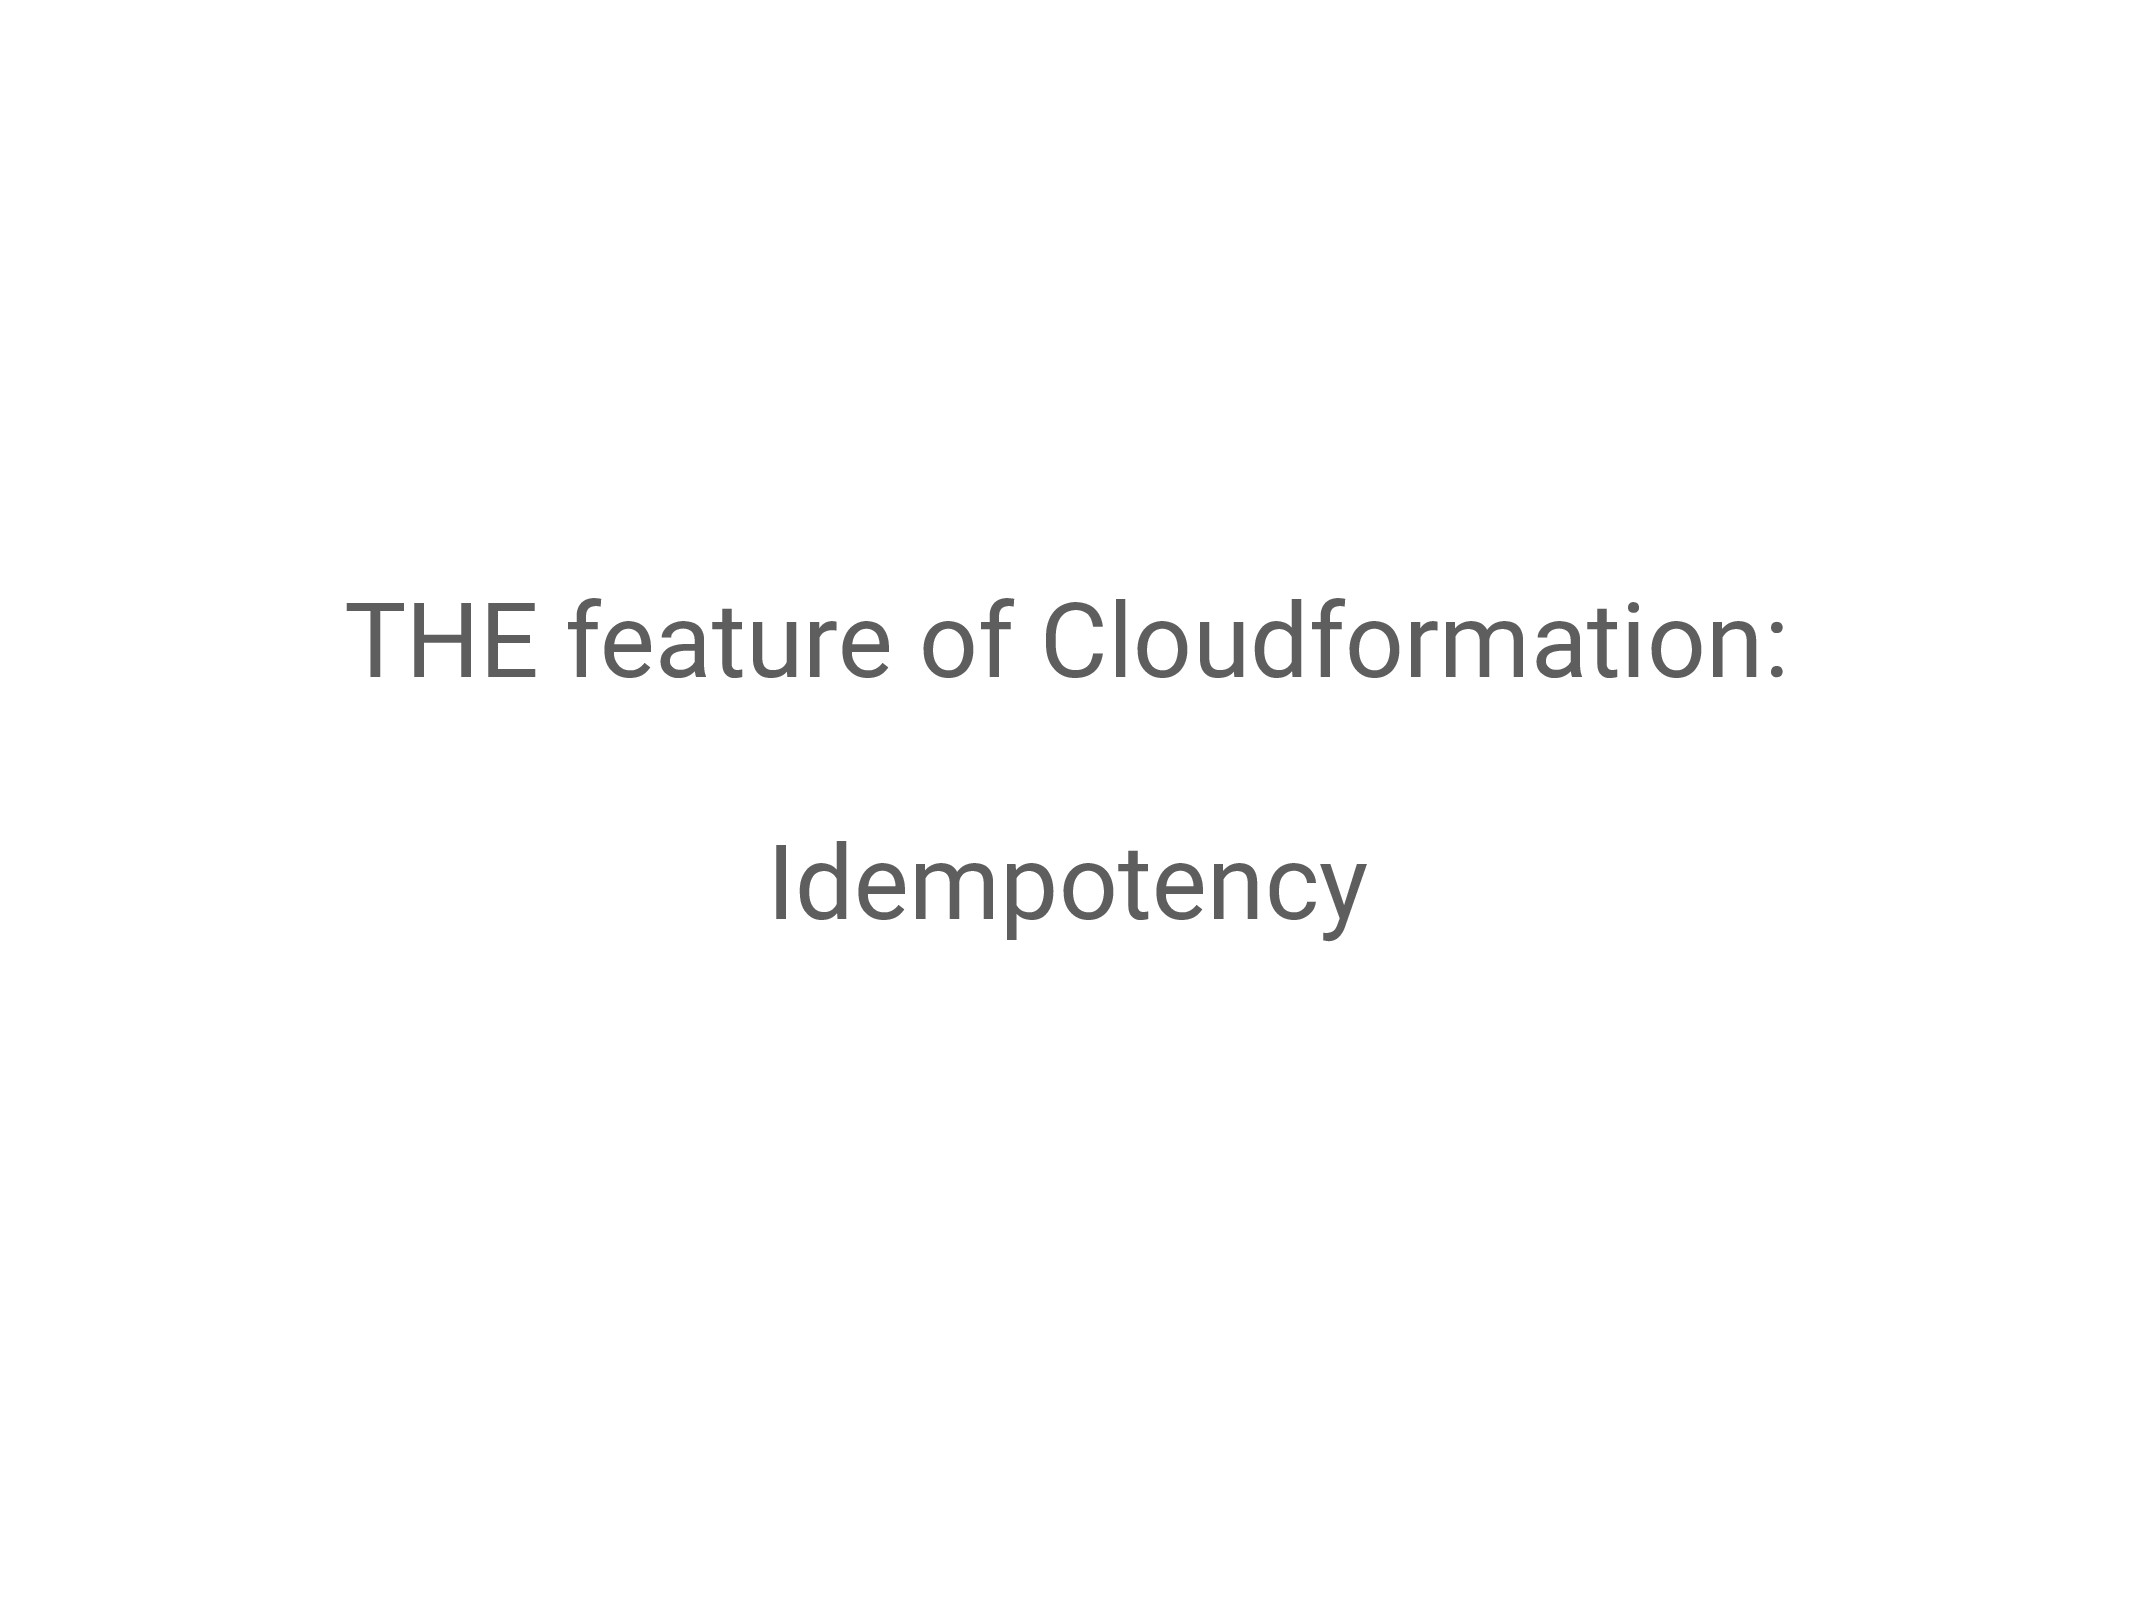 THE feature of Cloudformation: Idempotency